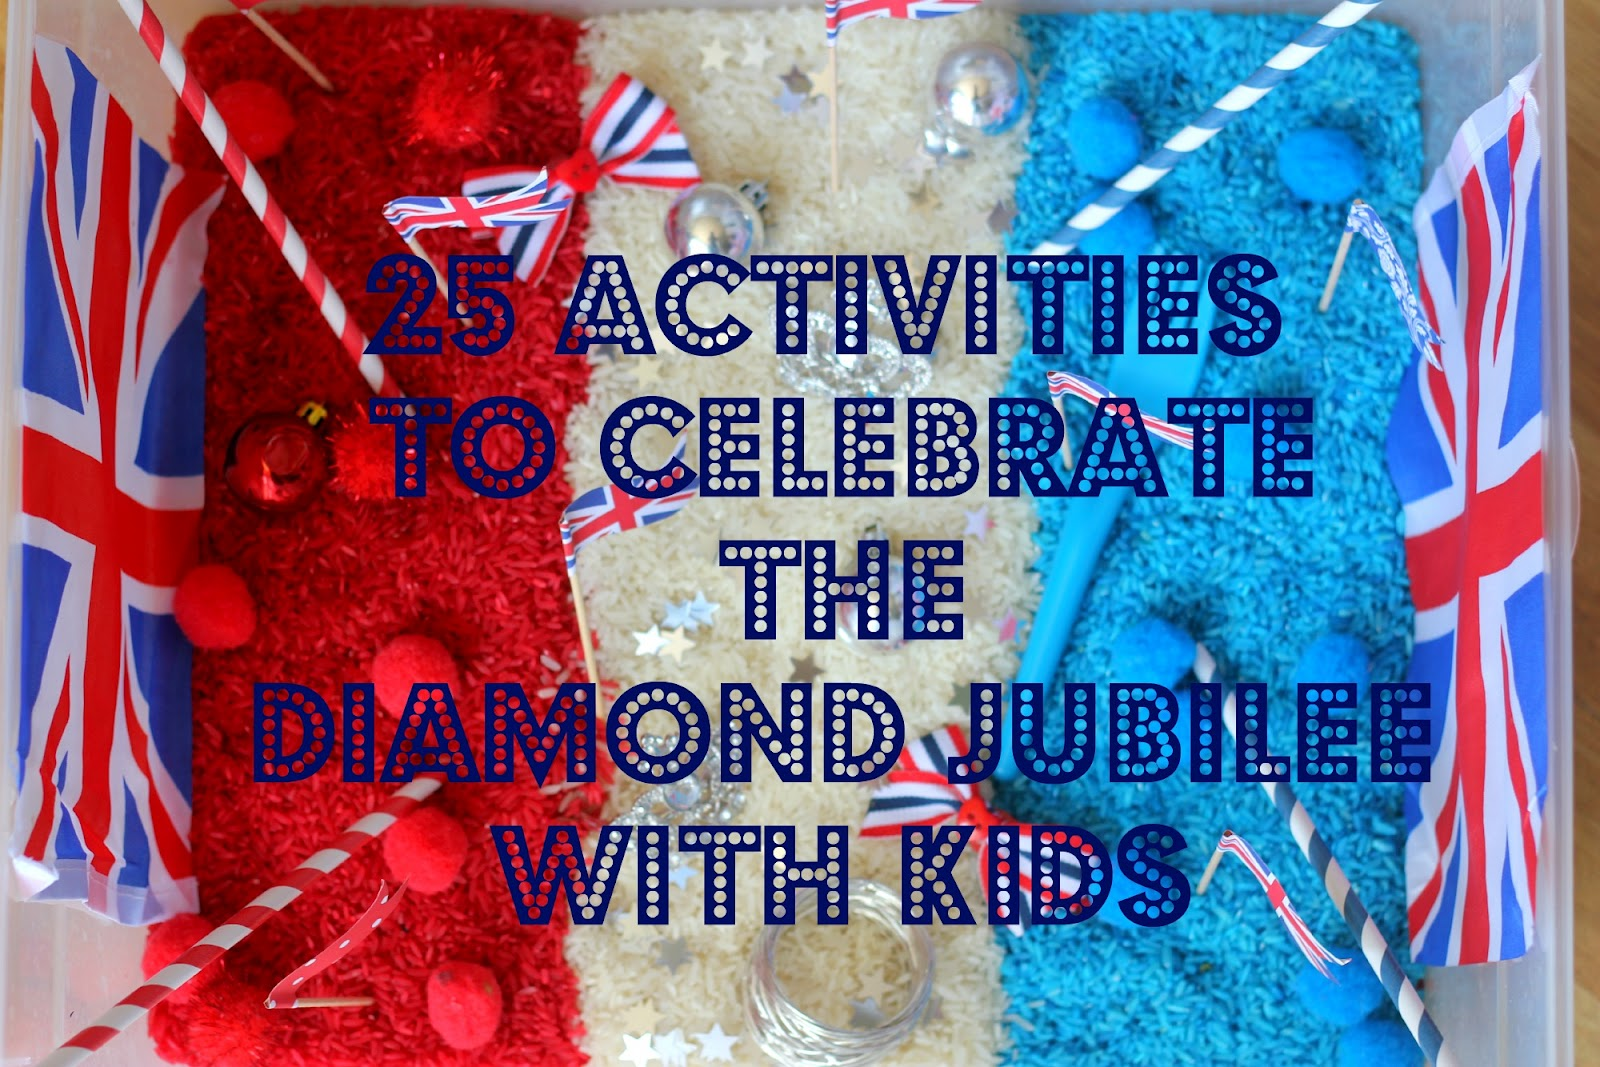 25 Activities For Celebrating The Diamond Jubilee With Kids